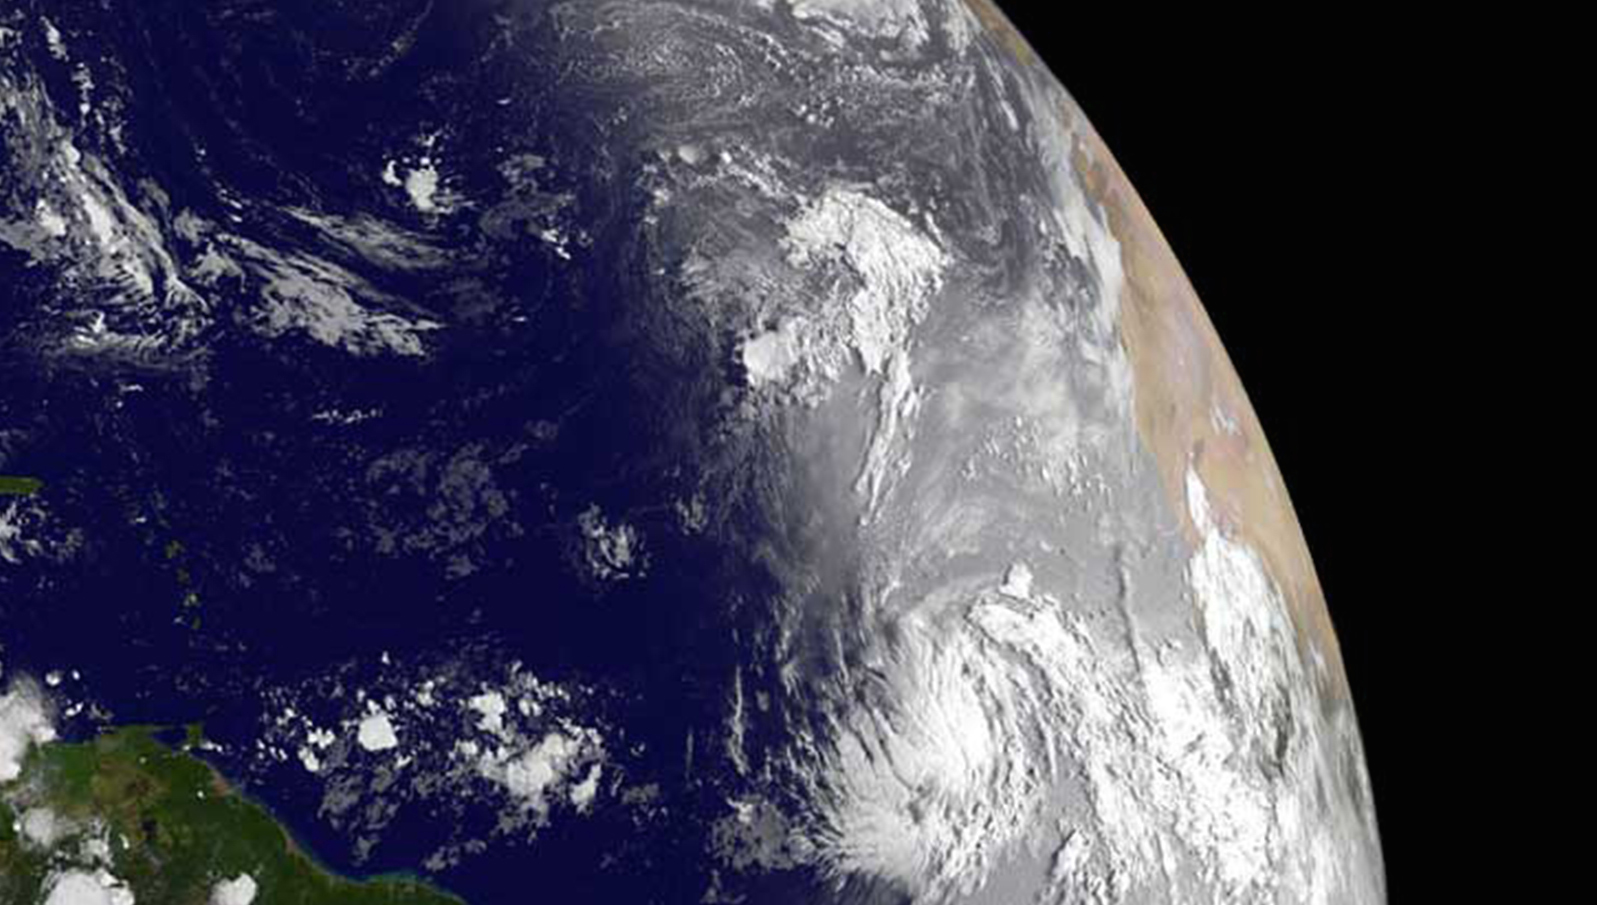 NASA handout image taken by the GOES-13 satellite shows Tropical Storm Katia (center, right) over the Atlantic Ocean August 30, 2011. Katia has top winds of 60 miles per hour (95 km per hour) and is jogging west at a brisk 22 mph (35 kph), the U.S. National Hurricane Center said, and it could become a hurricane on Wednesday. But beyond predicting Katia will be a major hurricane northeast of the Caribbean's northern Leeward Islands by Sunday, the Miami-based center says it is not possible now to predict its path with certainty, or say whether it will threaten the U.S. East Coast.